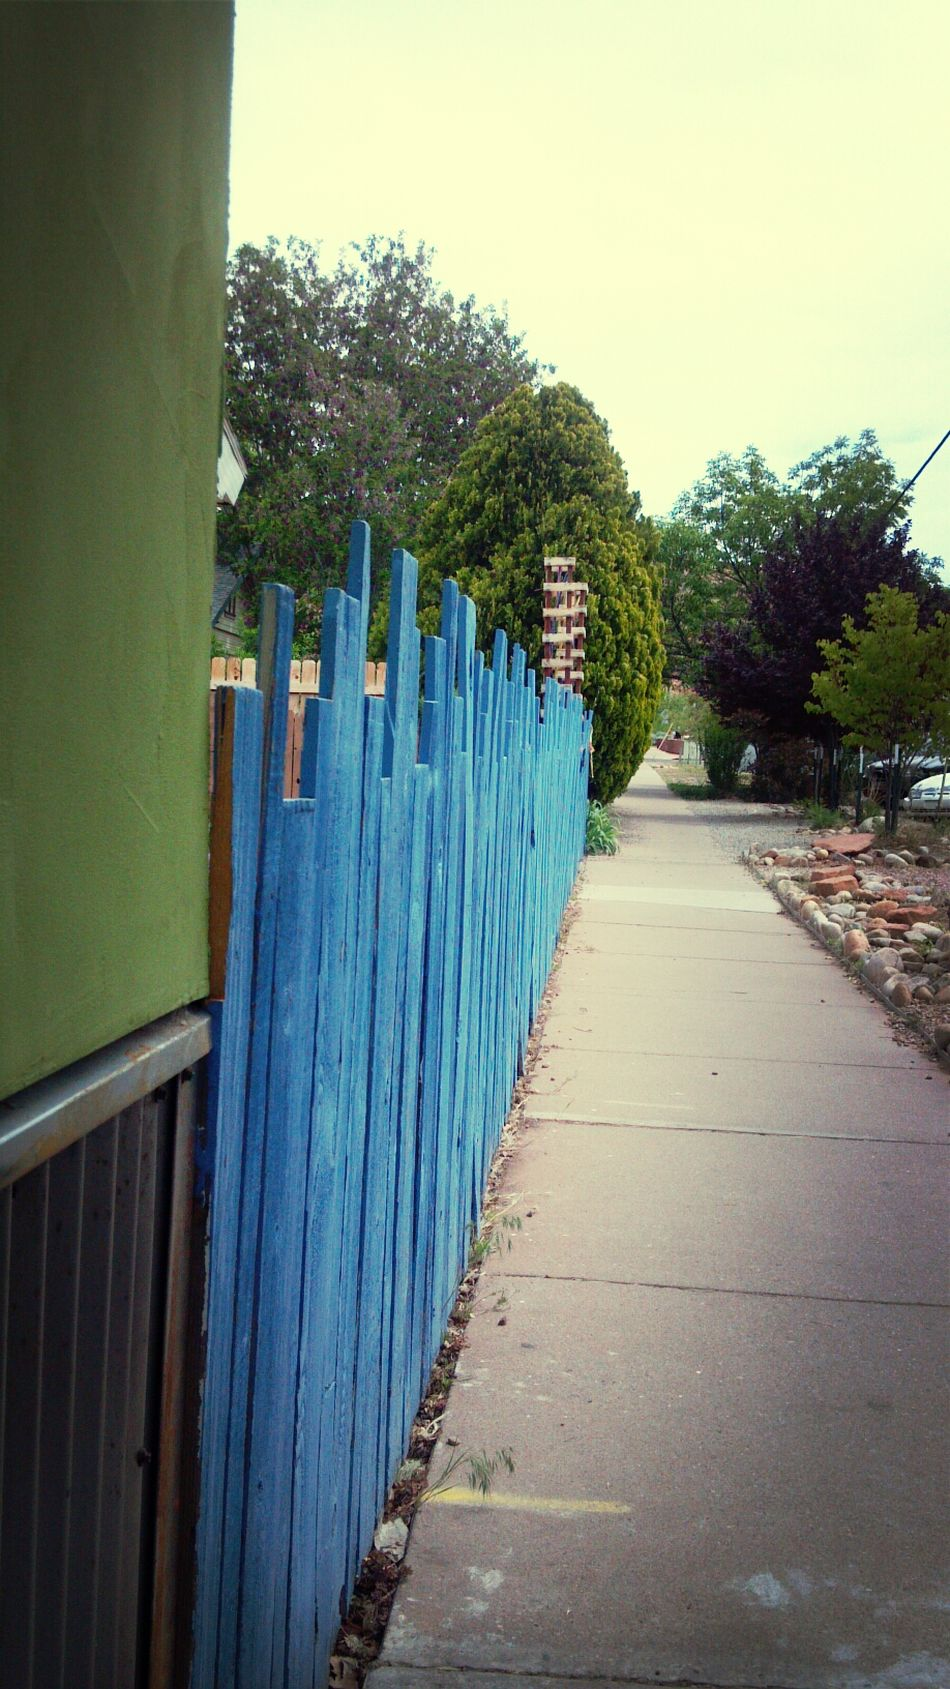 """""""Feeling Blue""""...Boost filter... Eyeem Photography Day EyeEm EyeEm Team EyeEm Gallery Outdoors No People Eyeem Marketplace Eyeem Gallery Taking Photos. Boost Filter Green Color Blue Color Fence Art Contrasting Textures Contrasting Colors Nature Art Is Everywhere EyeEm The Best Shots EyeEmBestPics Perspective View Down The Line Down The Lane EyeEm Best Shots Down The Street Blue Fence"""